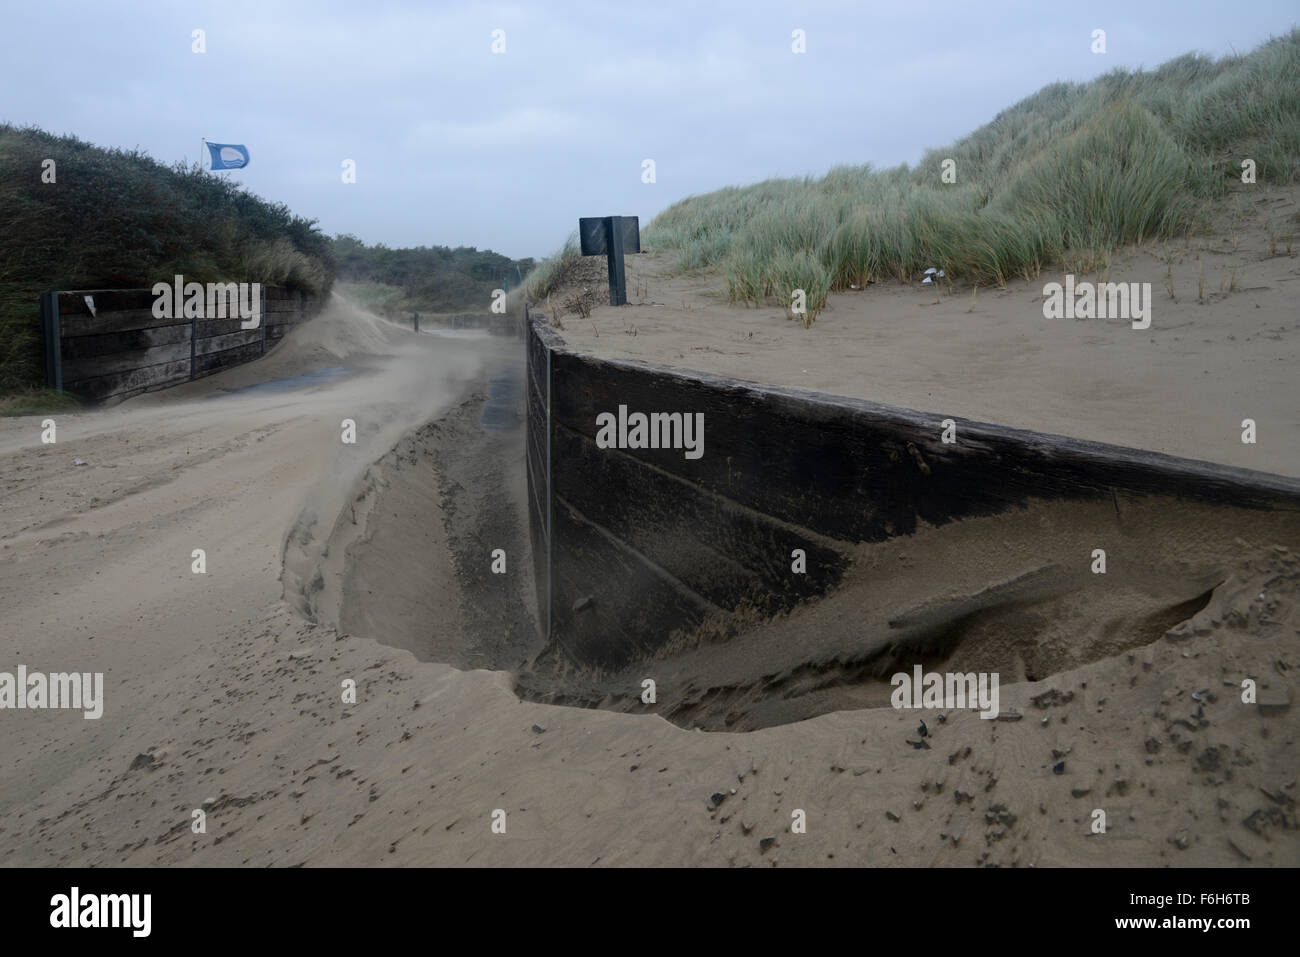 Pembrey Beach, South Wales, UK, Tuesday 17th Nov, 2015. Gales gust up to 50 mph across southernmost parts of Wales. - Stock Image